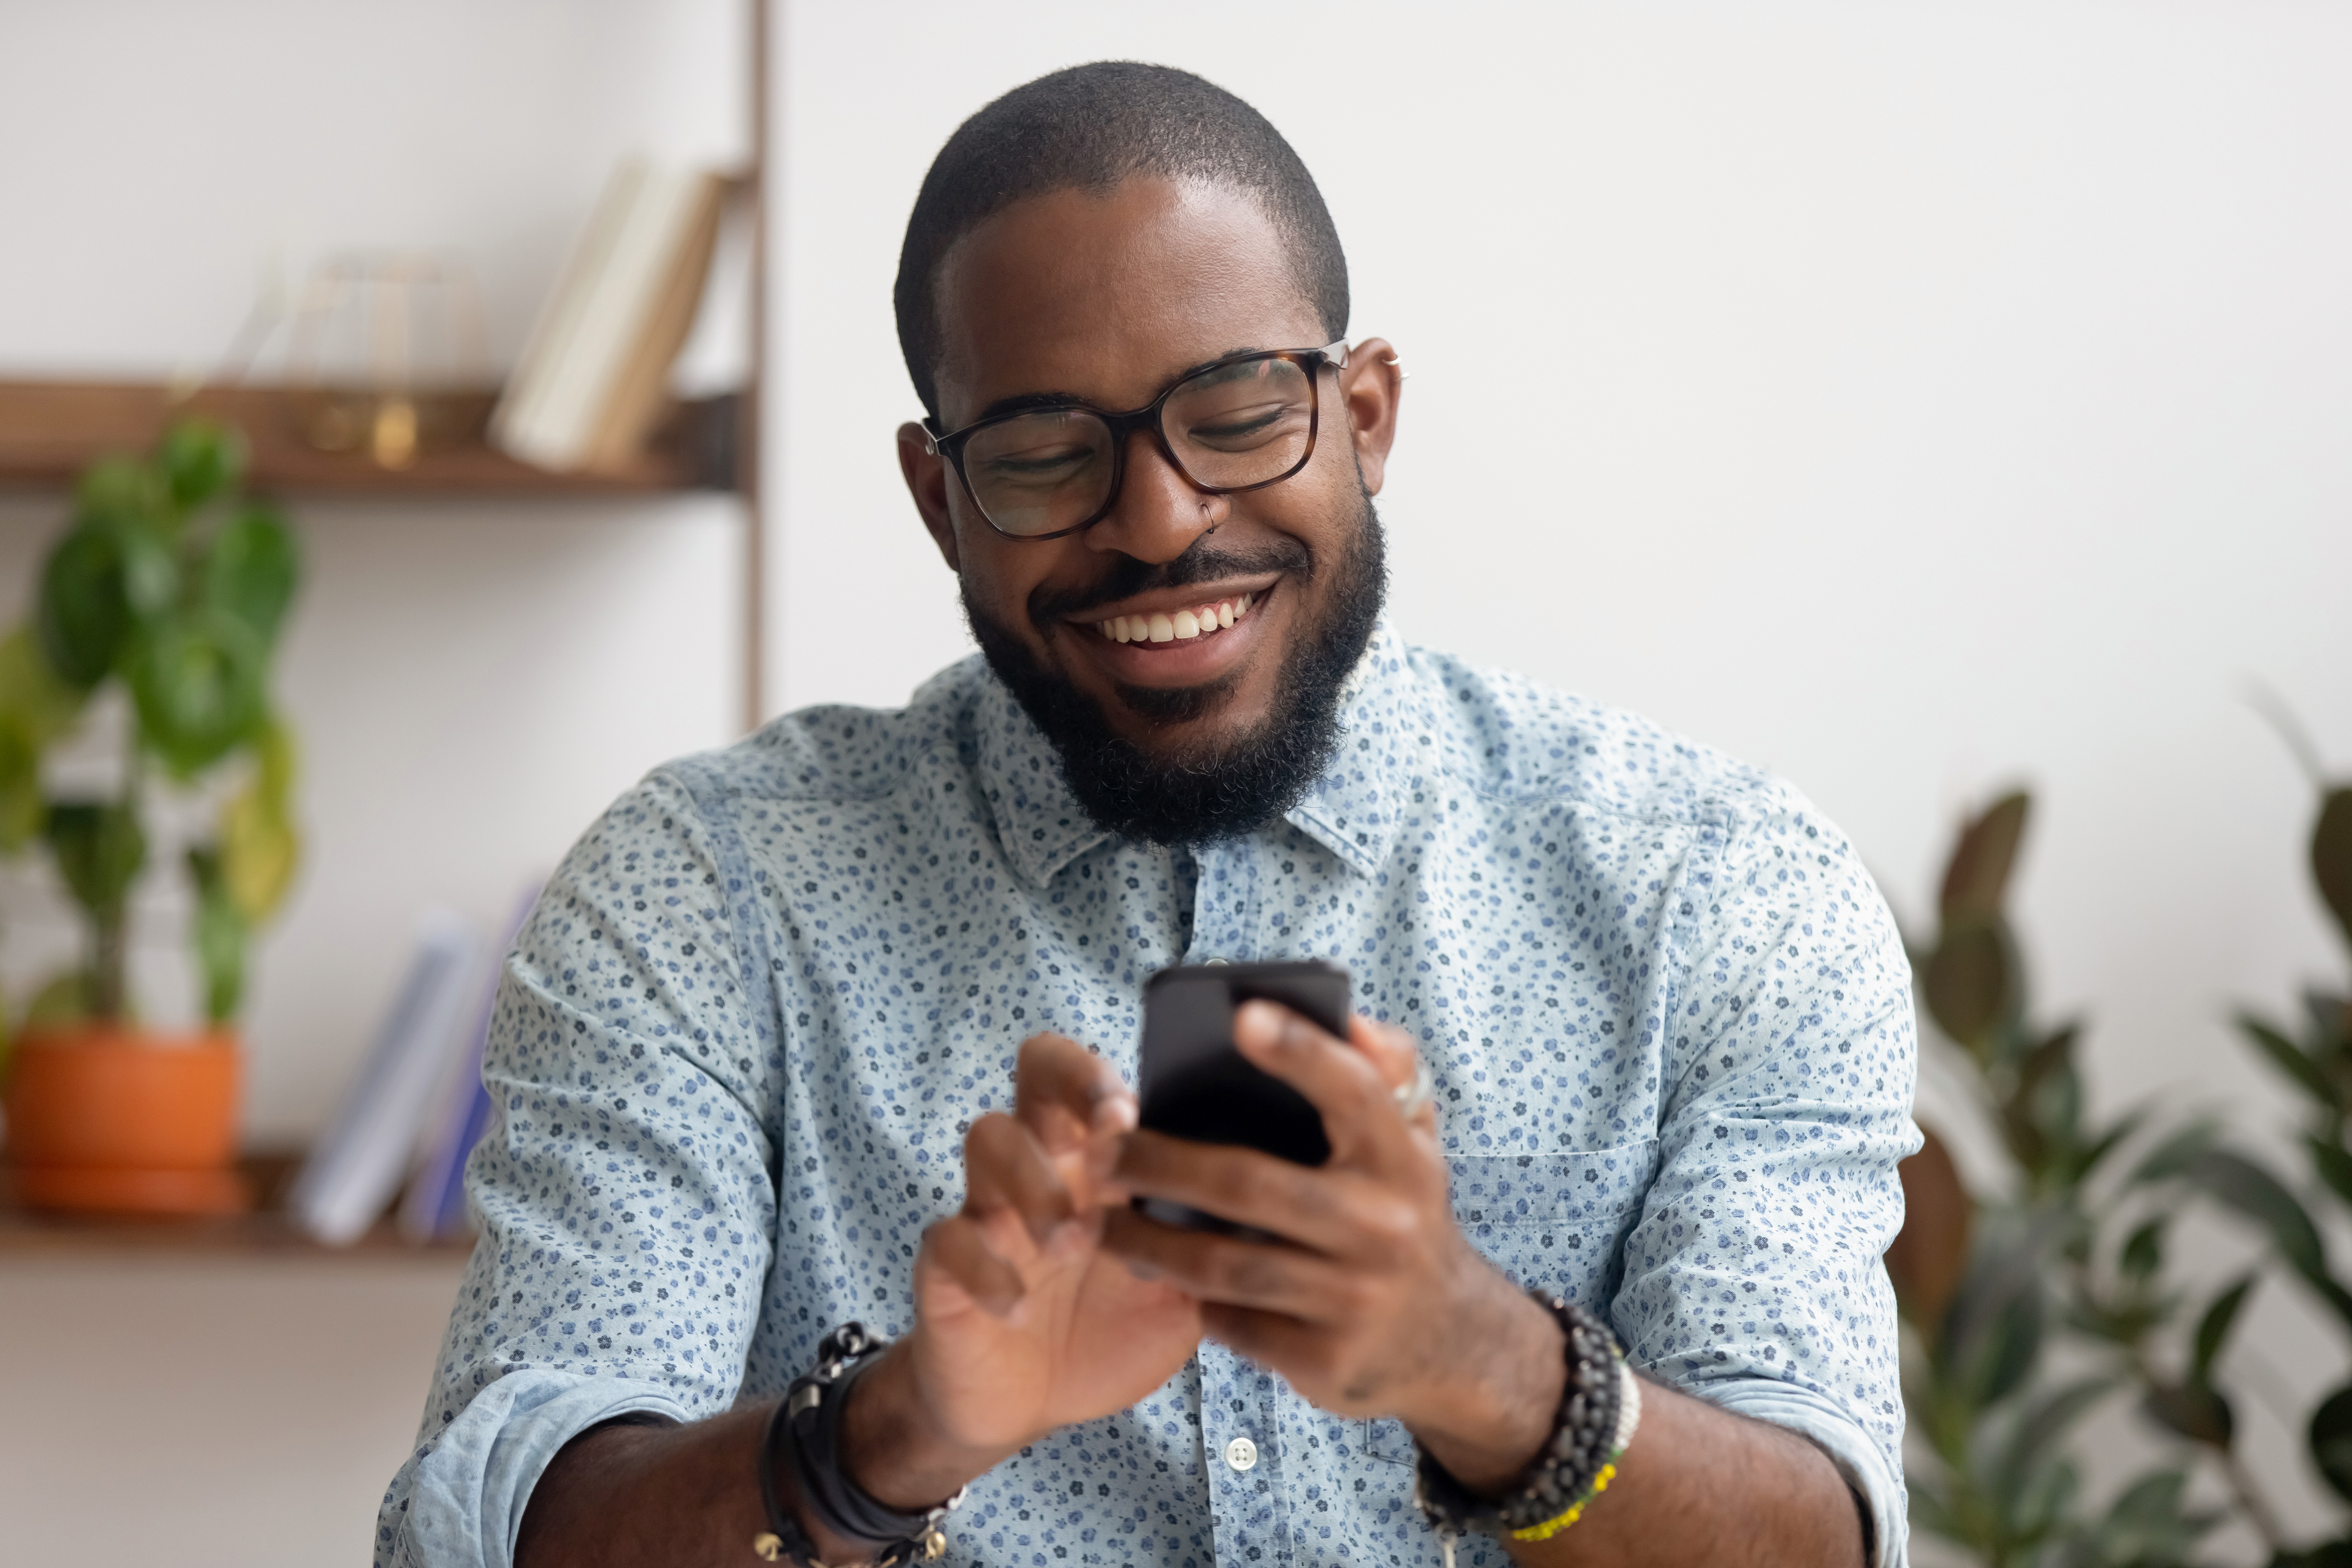 Happy african american businessman using phone mobile corporate apps at workplace texting sms, smiling black man looking at smartphone browsing internet, office technology and digital communication